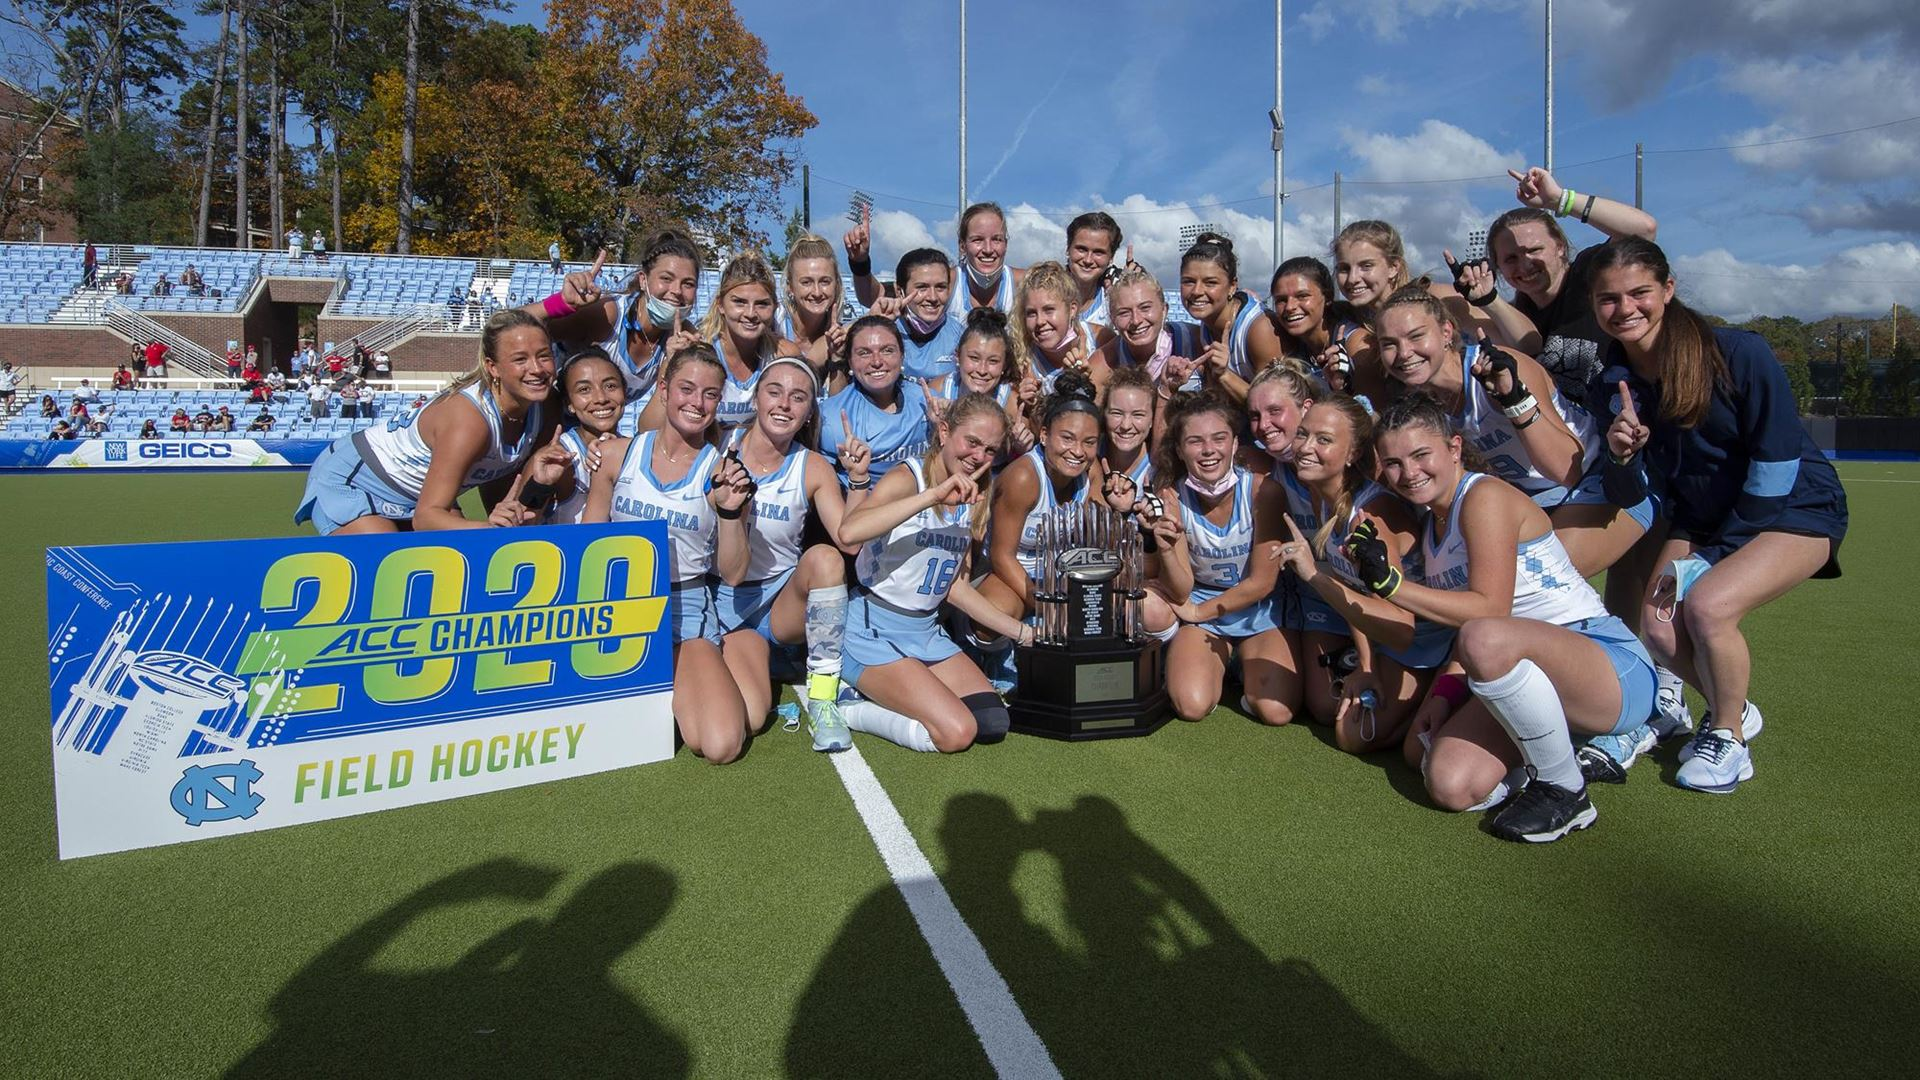 The Field hockey team celebrates with a 2020 championship banner.